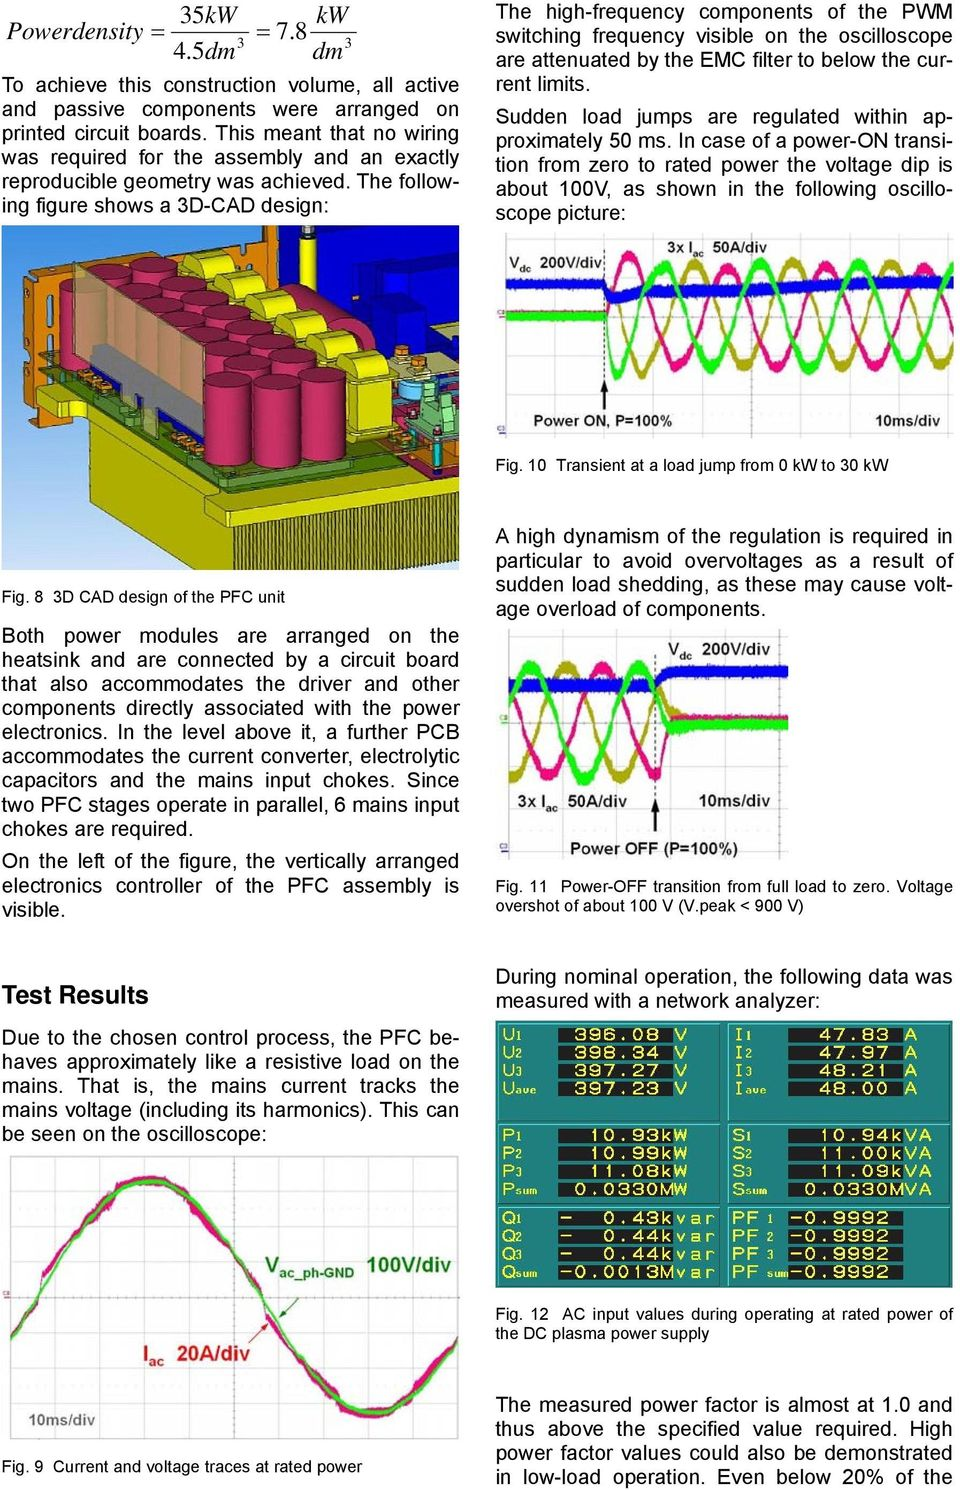 35 Kw Active Rectifier With Integrated Power Modules Pdf Full Bridge 1 Kva Inverter Circuit Using 4 N Channel Mosfets Smps The Following Figure Shows A 3d Cad Design 3 High Frequency Components